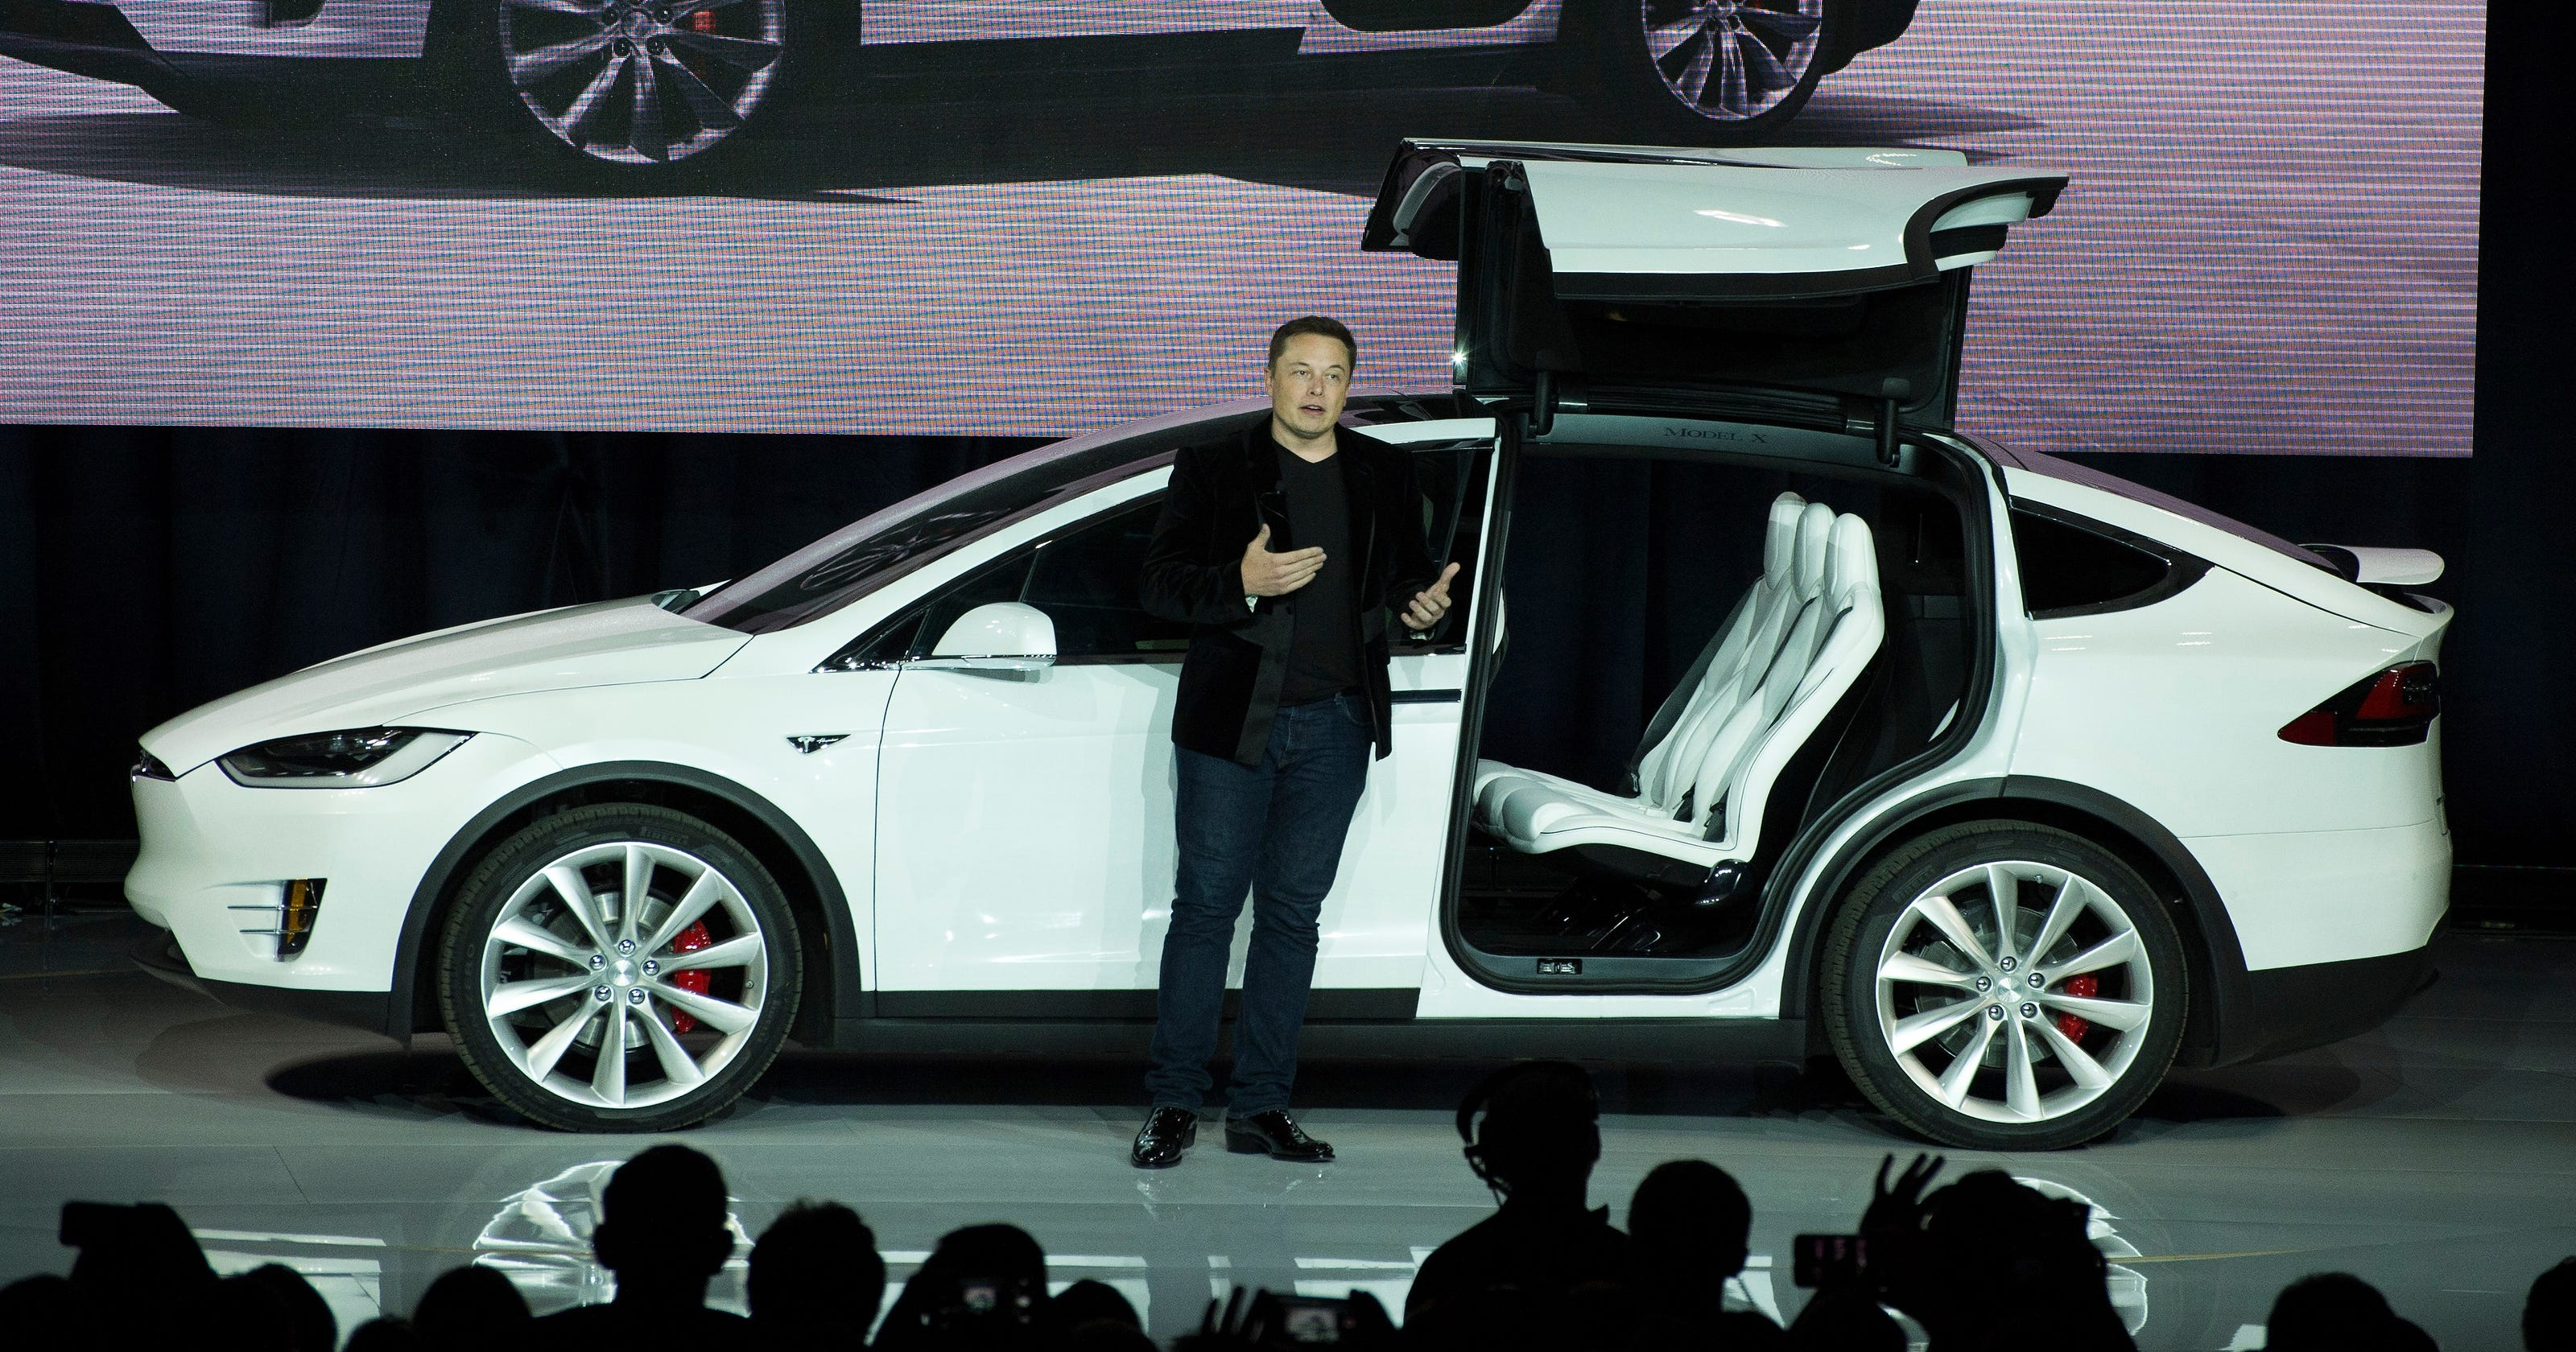 Tesla prices novel Model X SUV at $80,000